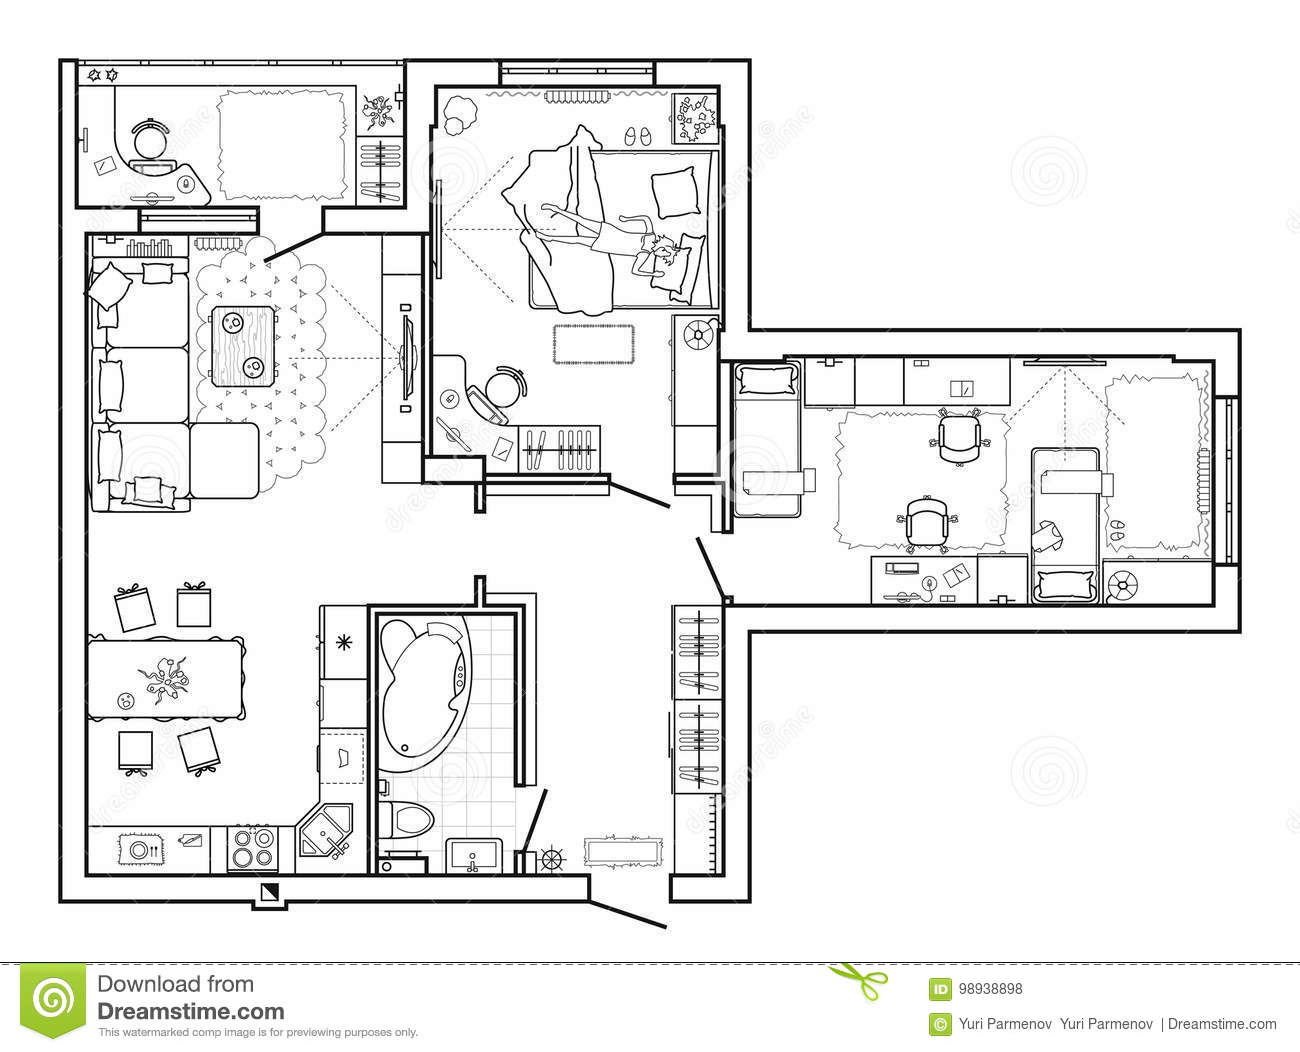 Floor plan with furniture in top view architectural set of furniture thin line icons detailed layout of the modern apartment